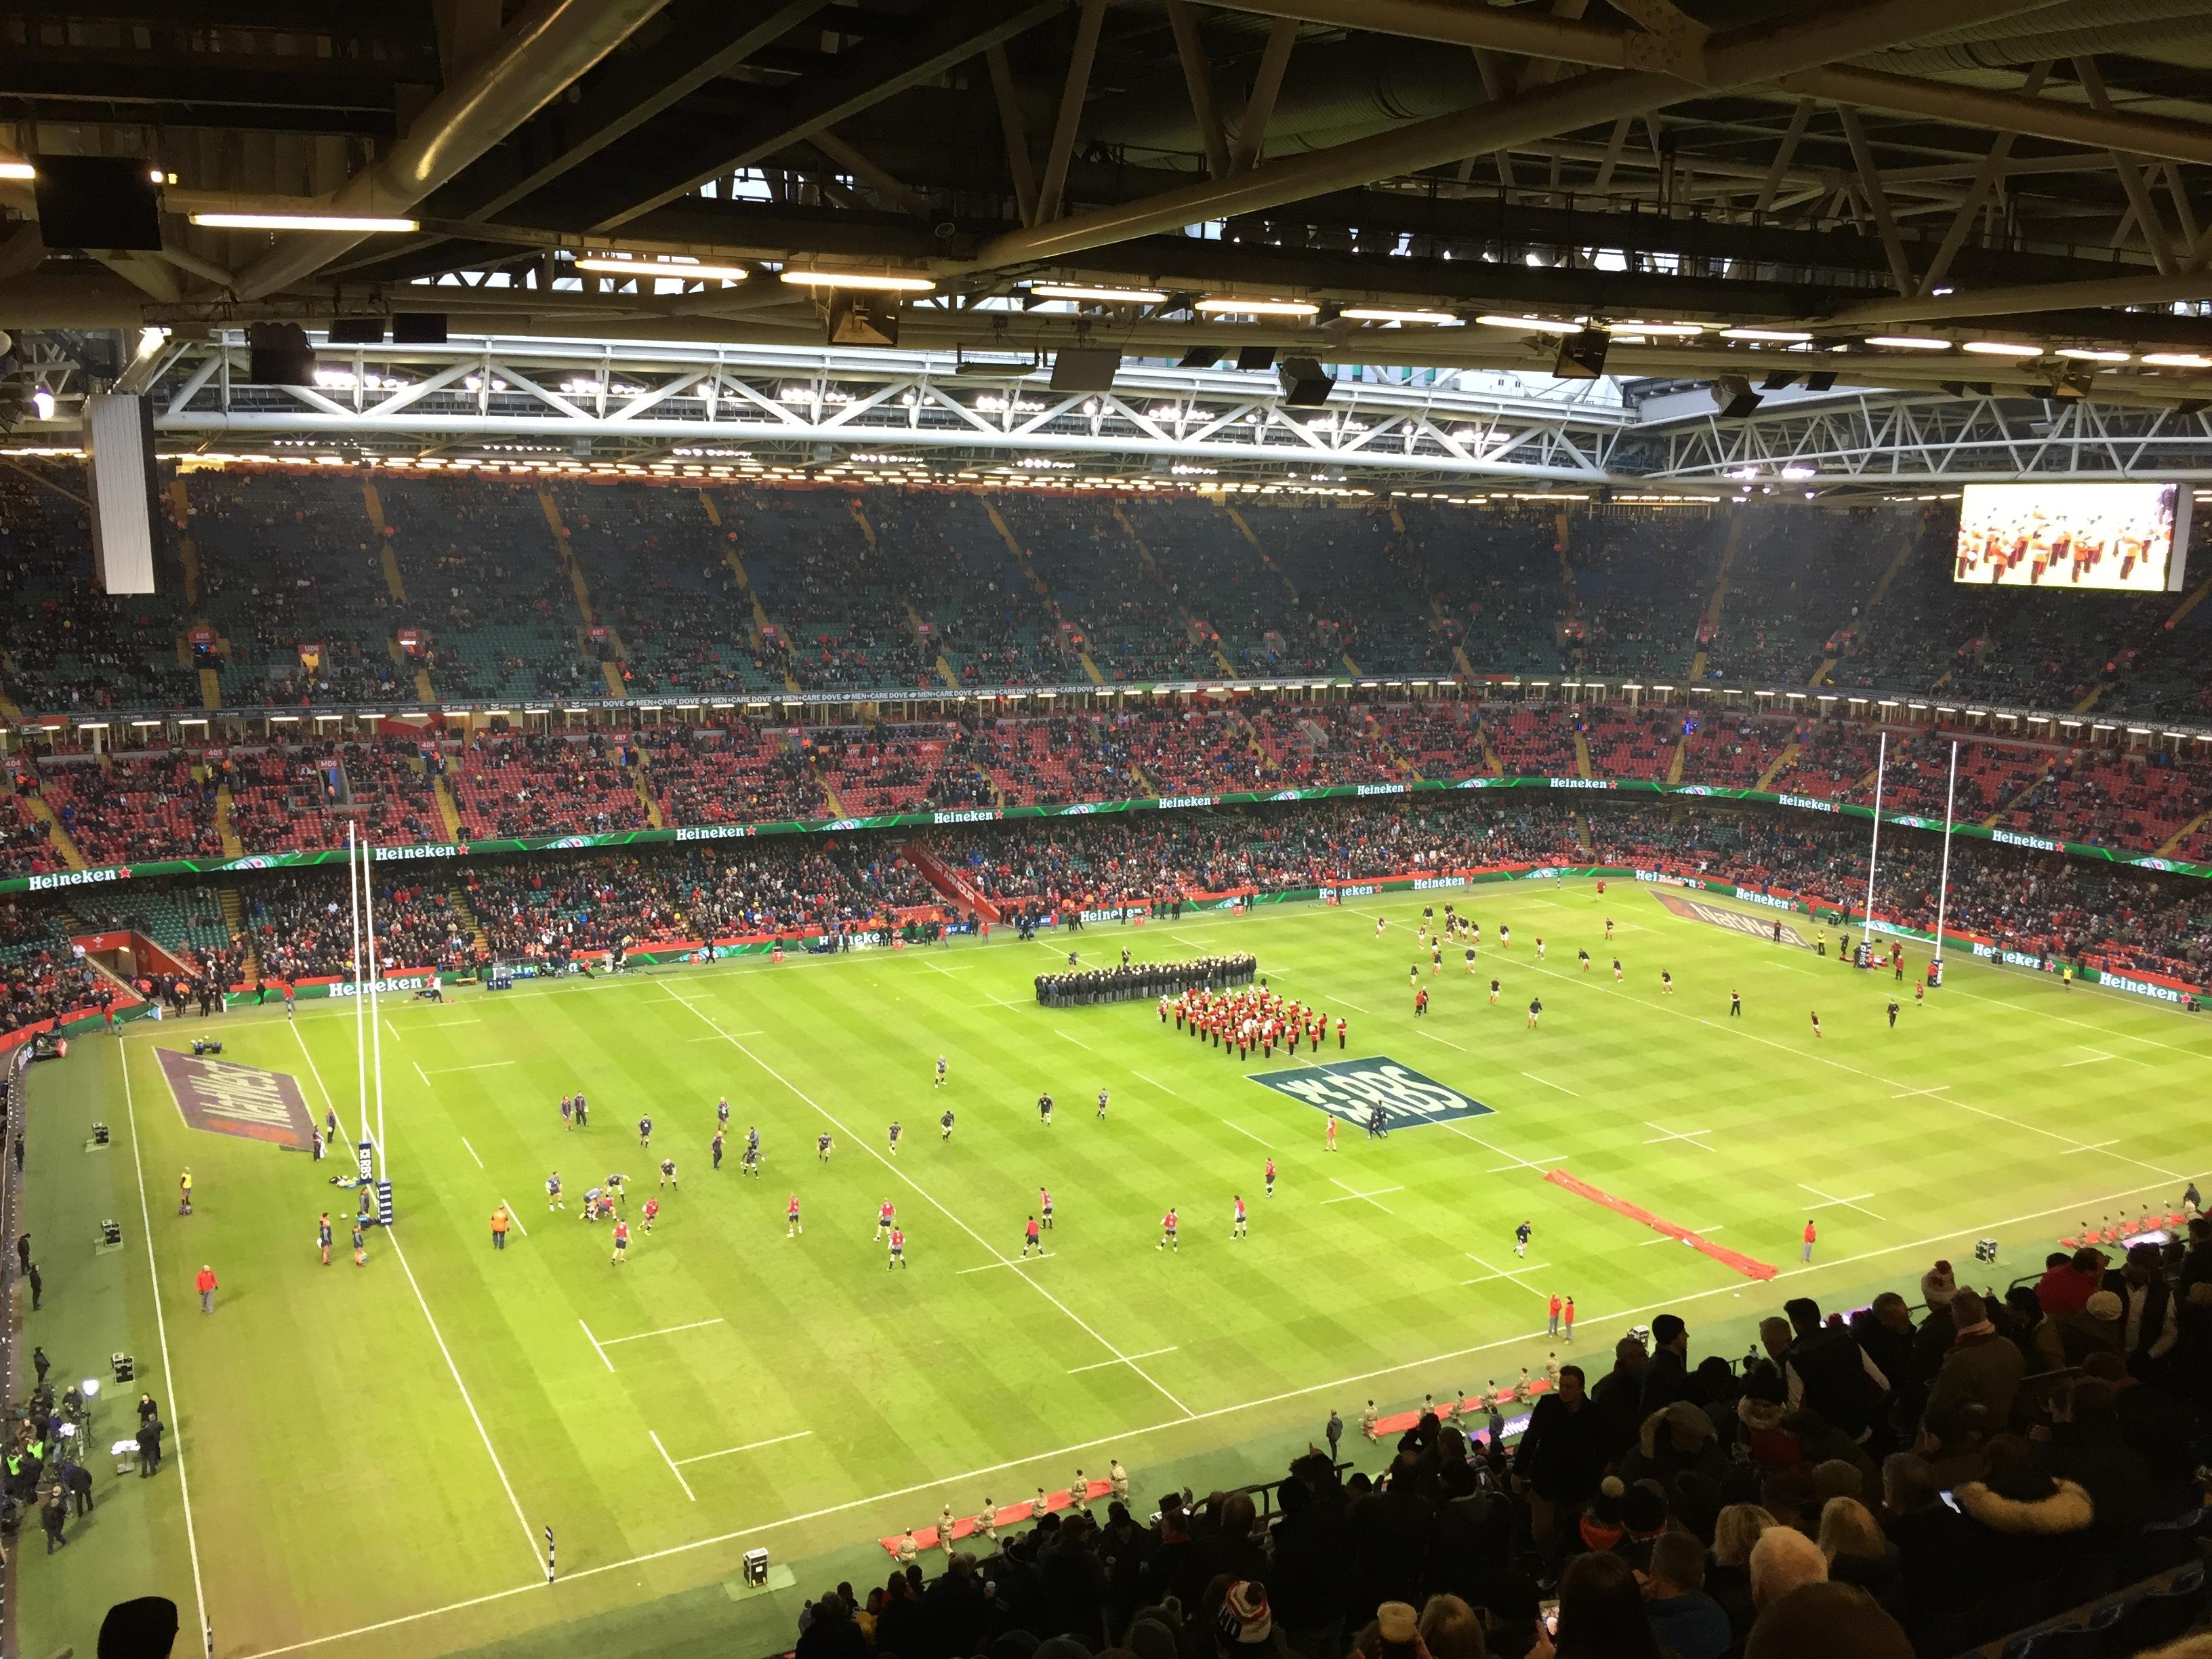 Principality Stadium Section U32 Row 29 Seat 12